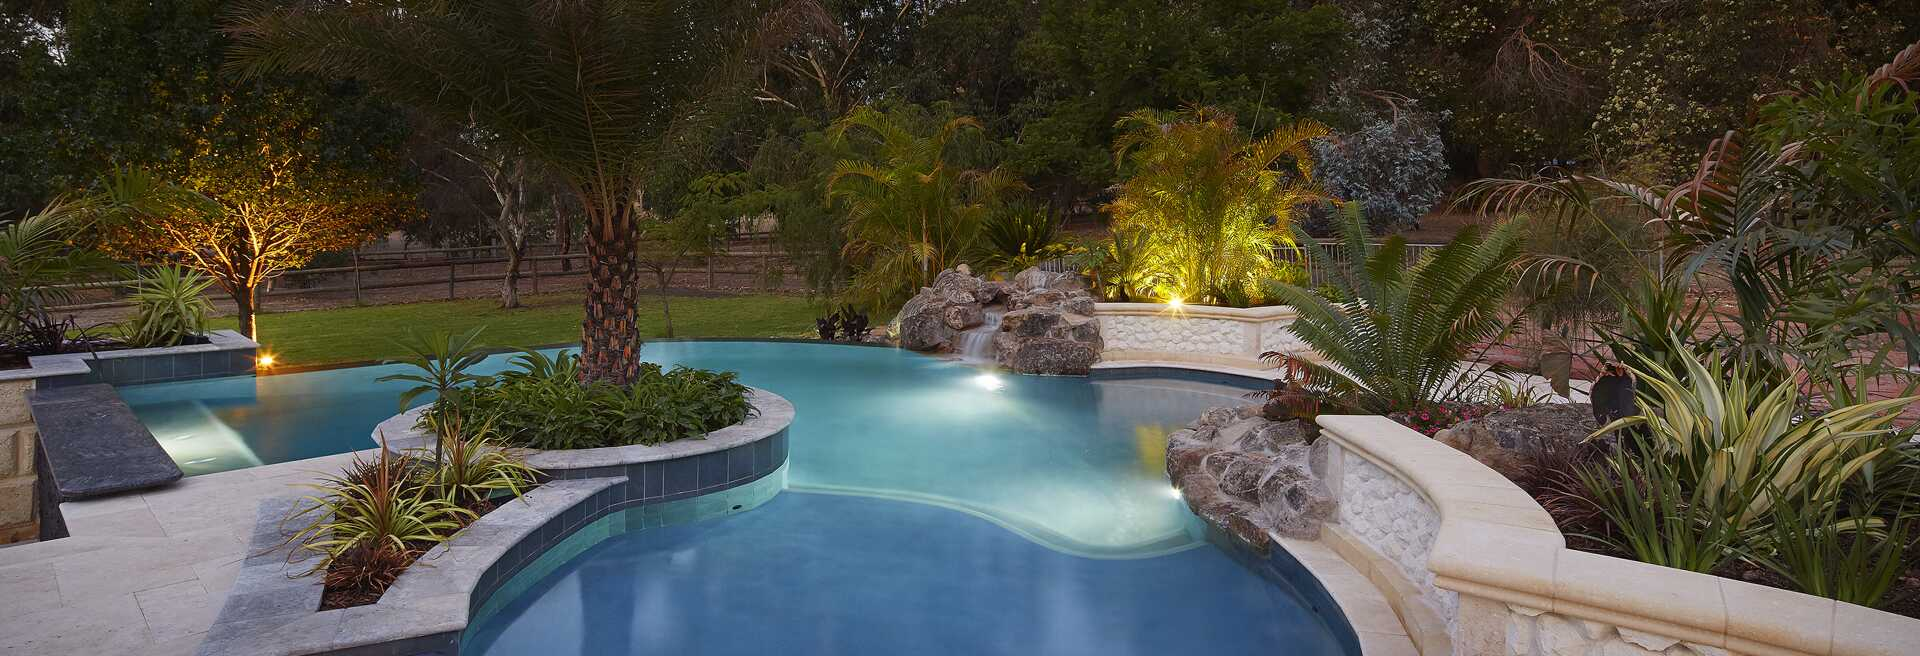 The Water\'s Edge - Pool Design and Landscaping